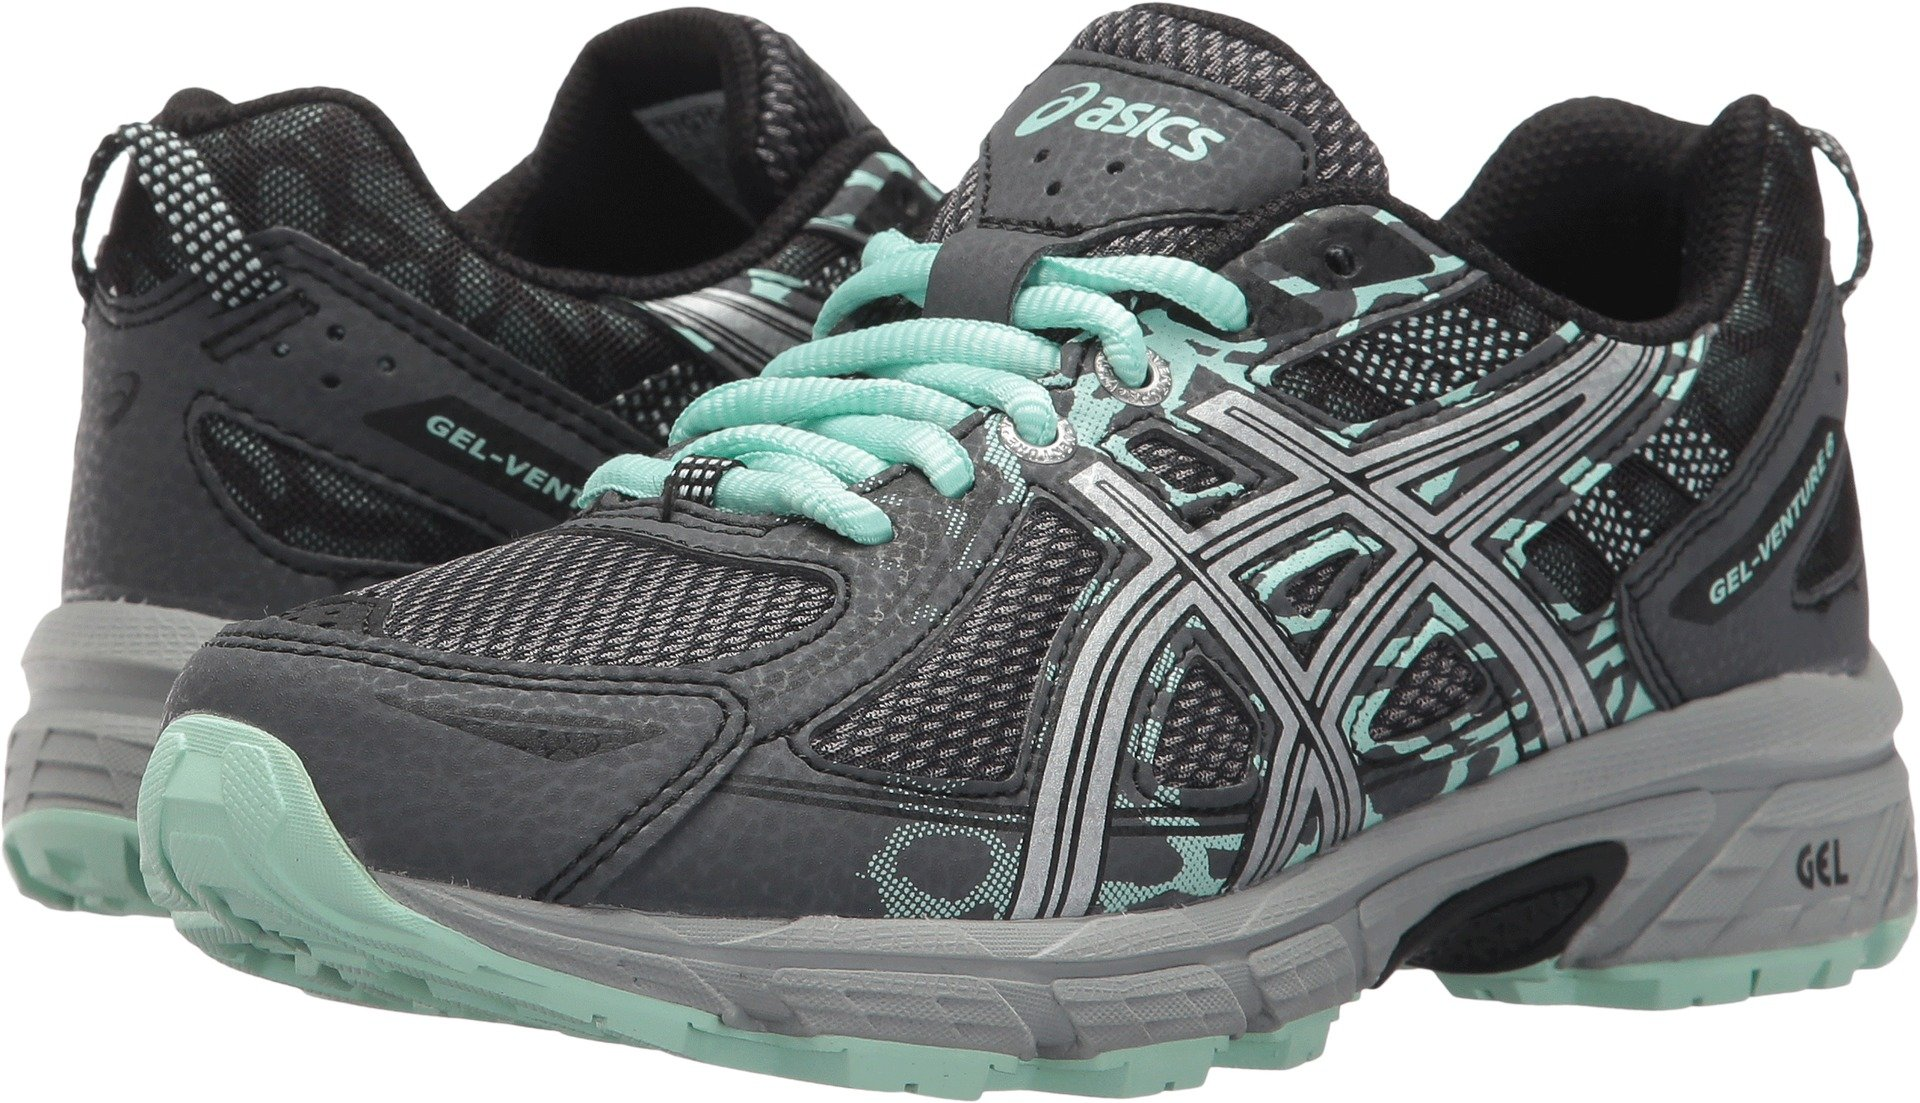 ASICS Women's Gel-Venture 6 Running-Shoes,Castlerock/Silver/Honeydew,5 D US